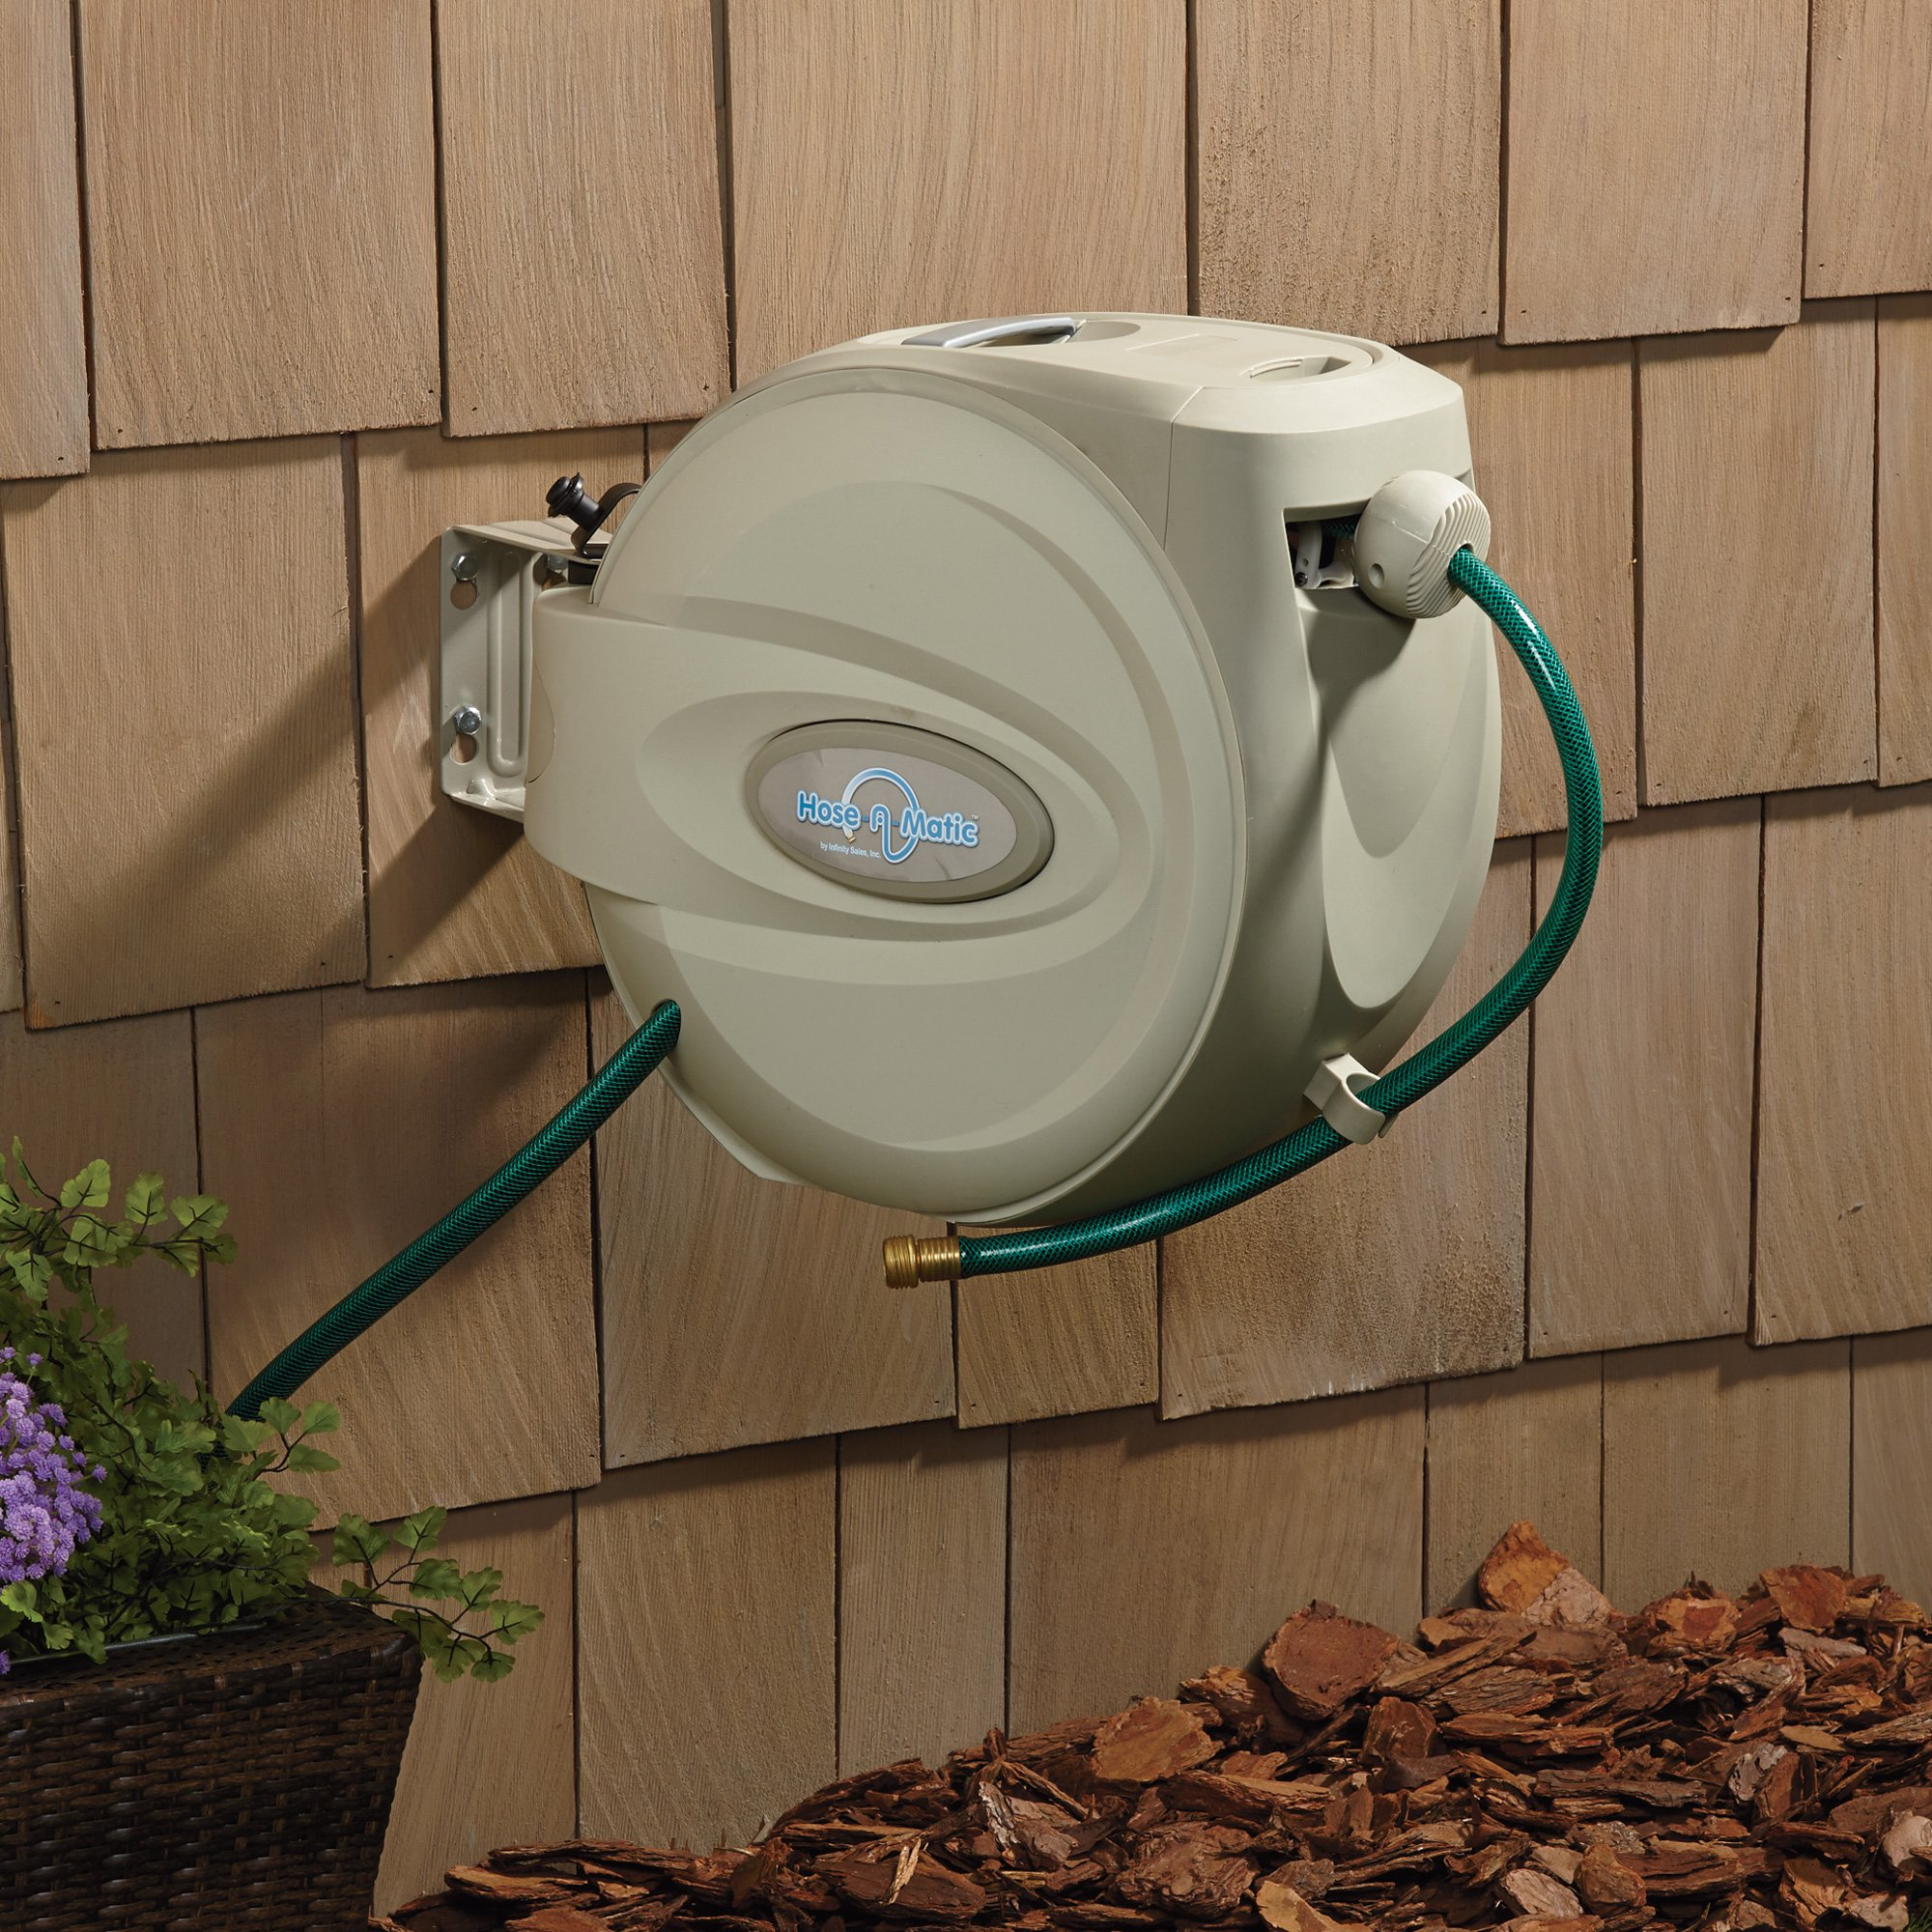 Great Hose A Matic Wall Mount Garden Hose Reel U2014 Holds 5/8in